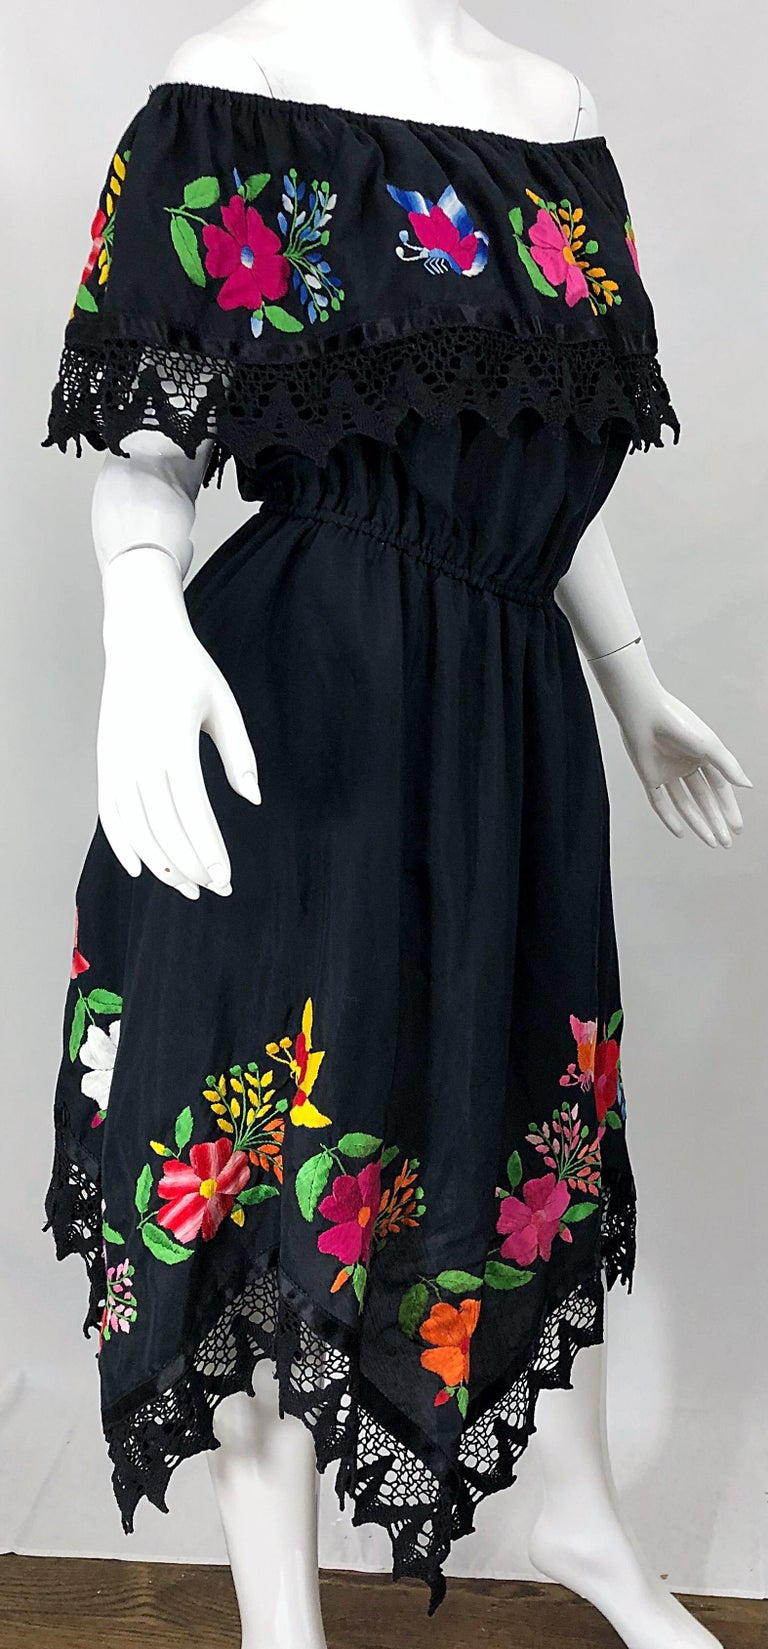 1970s Boho Chic Black Colorful Cotton Embroidered Handkerchief Hem Vintage Dress For Sale 11